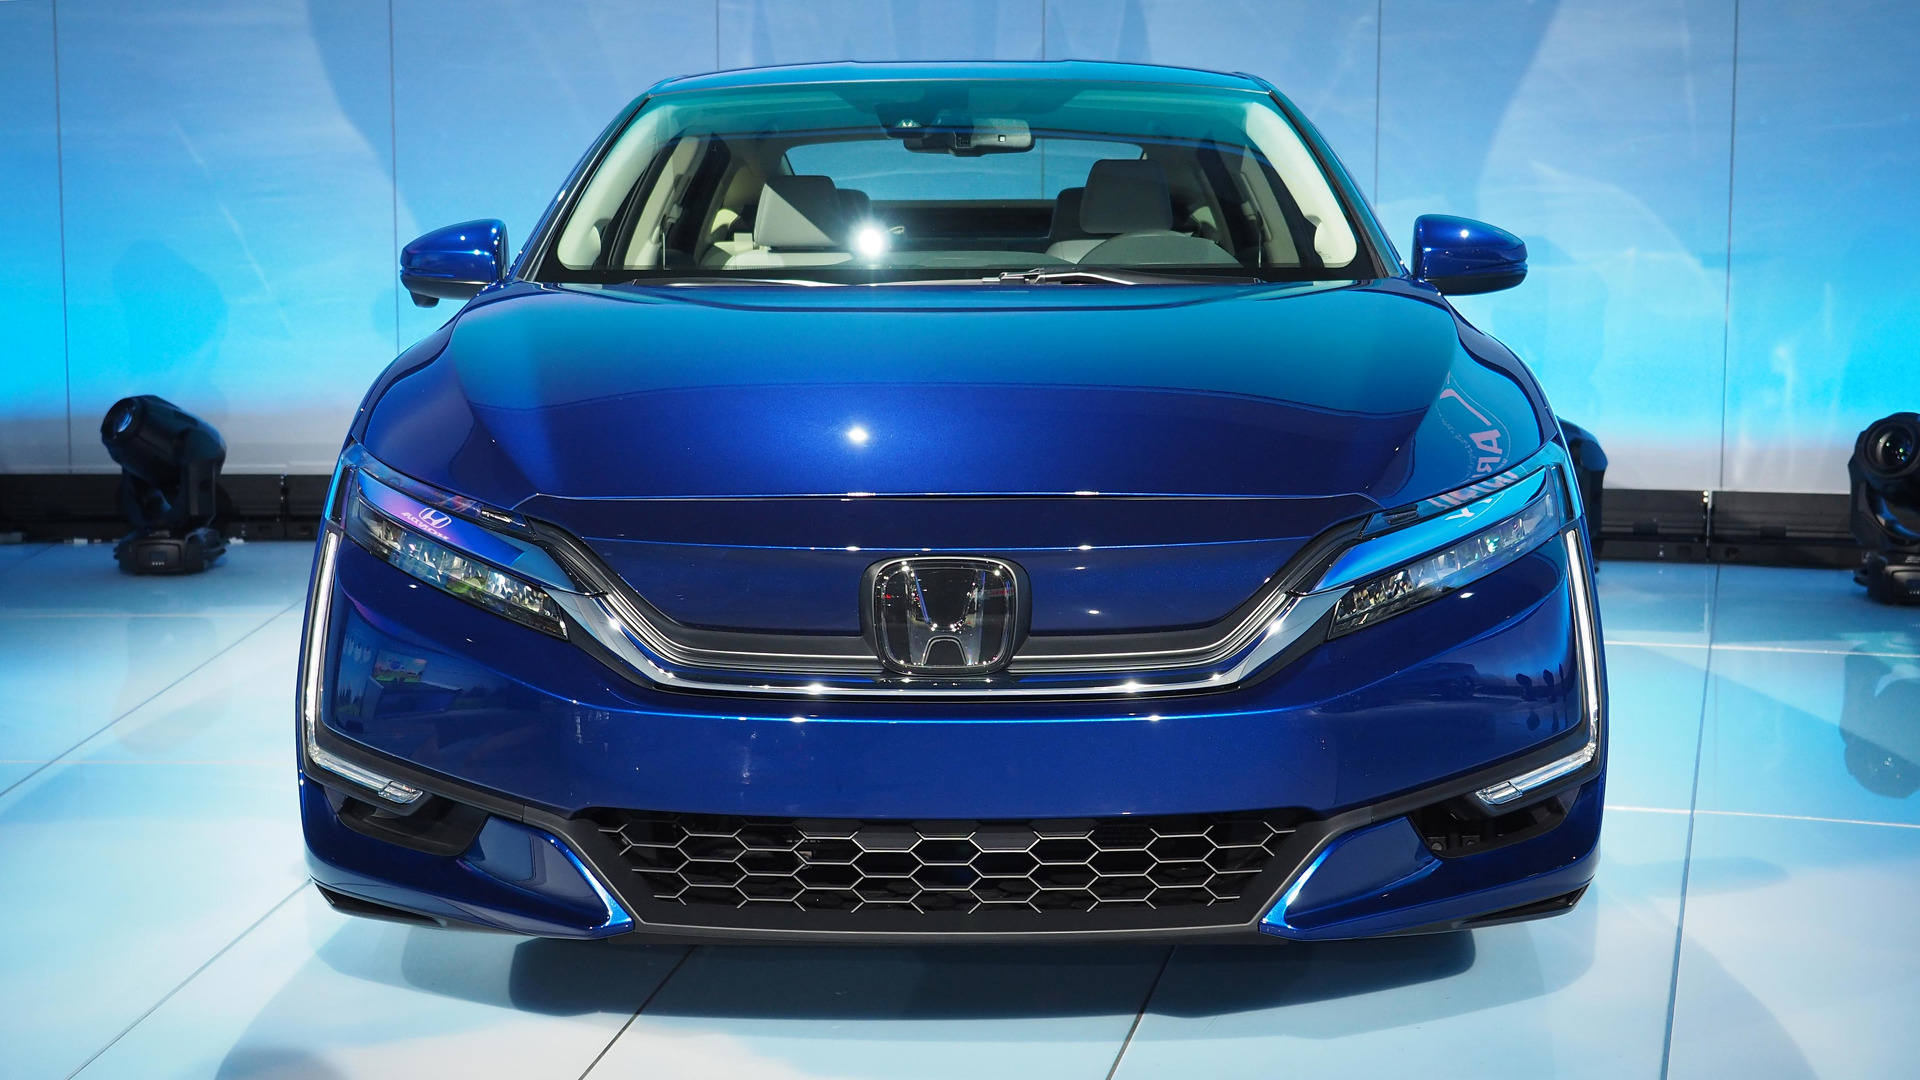 two honda evs to debut 2018 fully self driving cars by 2025. Black Bedroom Furniture Sets. Home Design Ideas